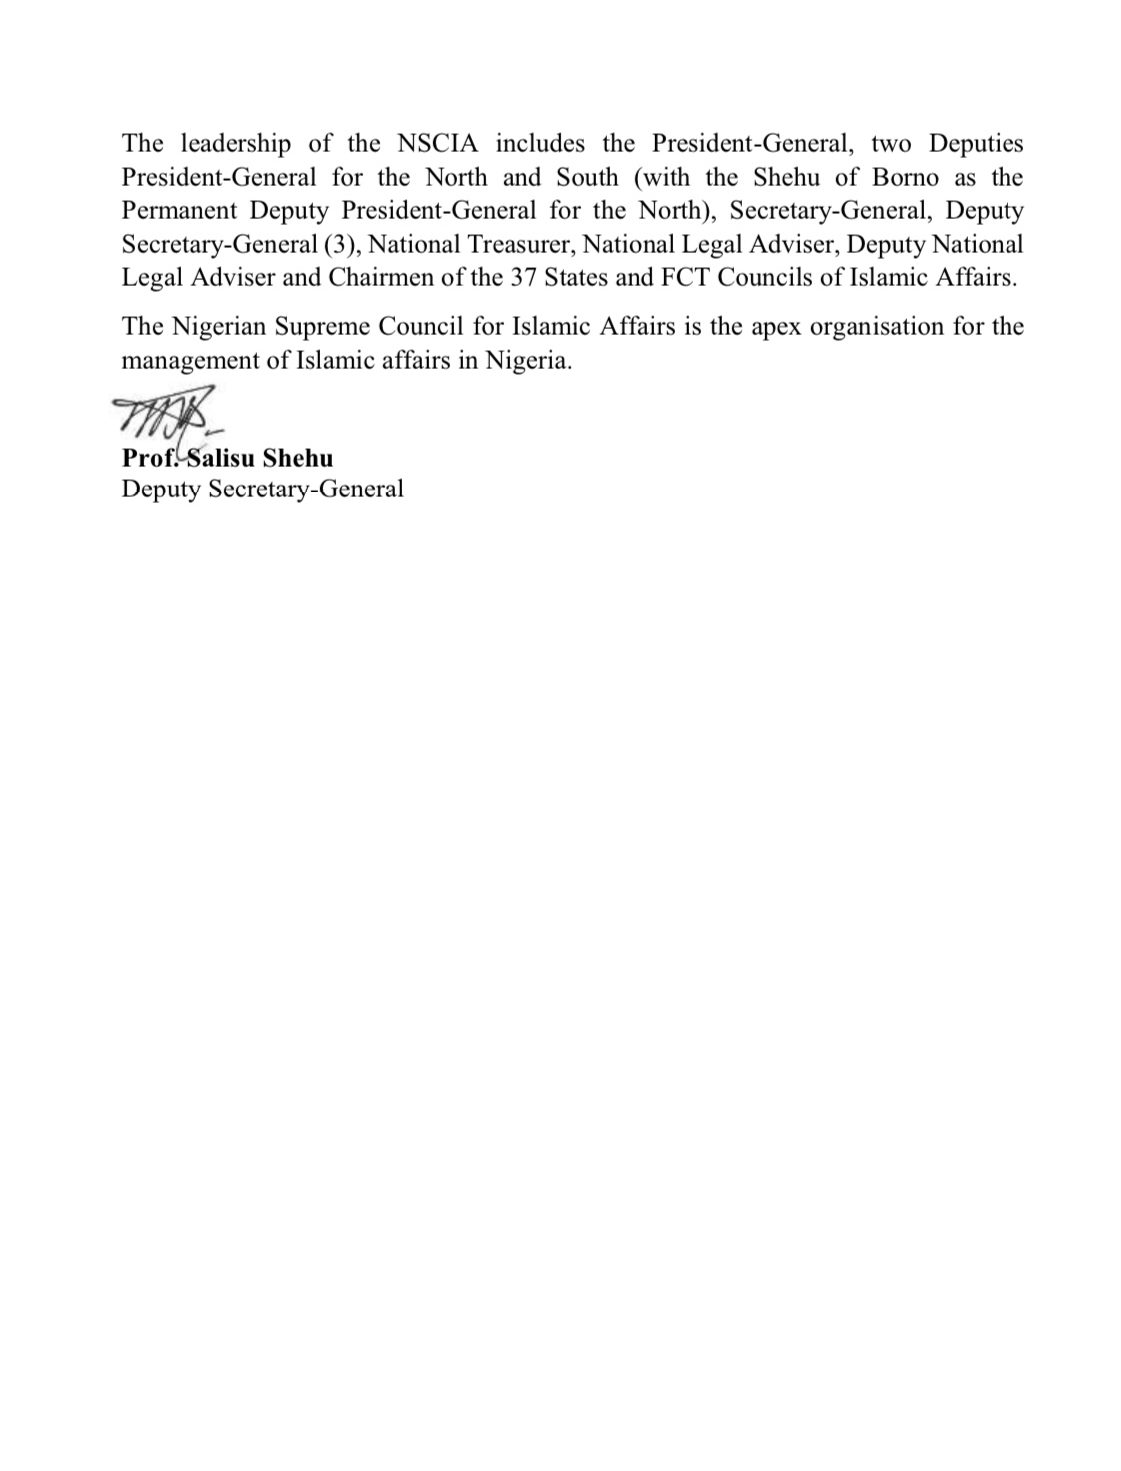 APPOINTMENT OF A NEW DEPUTY PRESIDENT-GENERAL (SOUTH) FOR THE NIGERIAN SUPREME COUNCIL FOR ISLAMIC AFFAIRS (NSCIA)